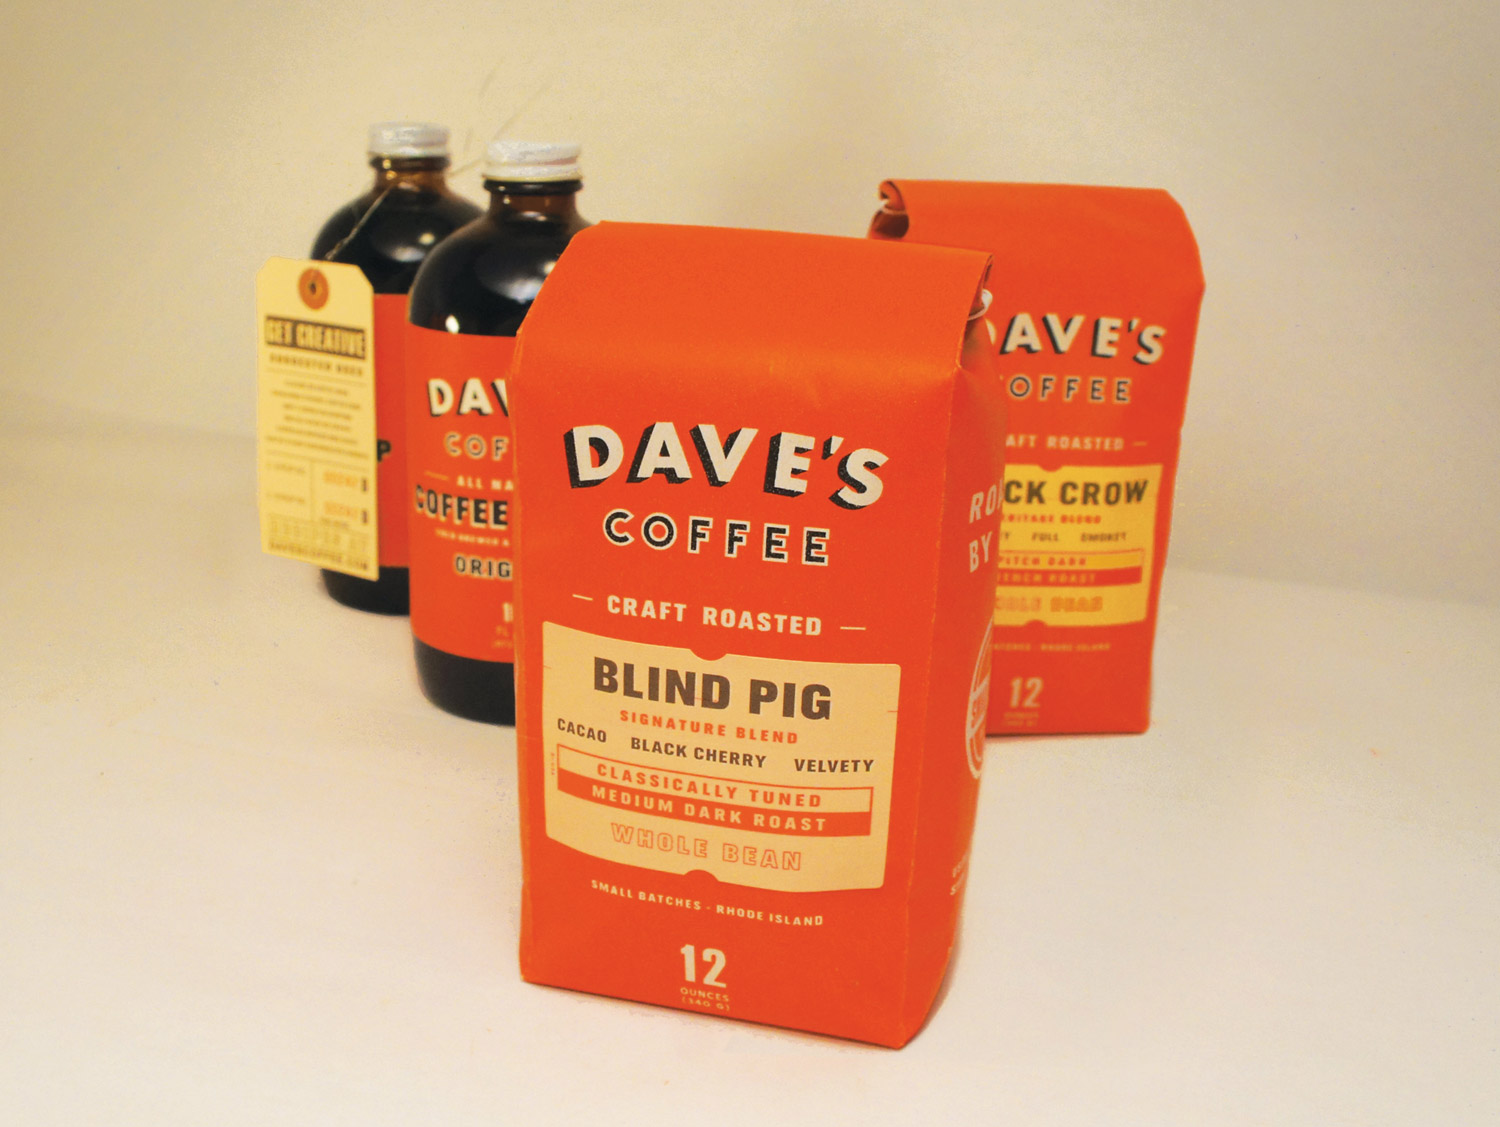 Daves-Coffee-Packaging-010.jpg